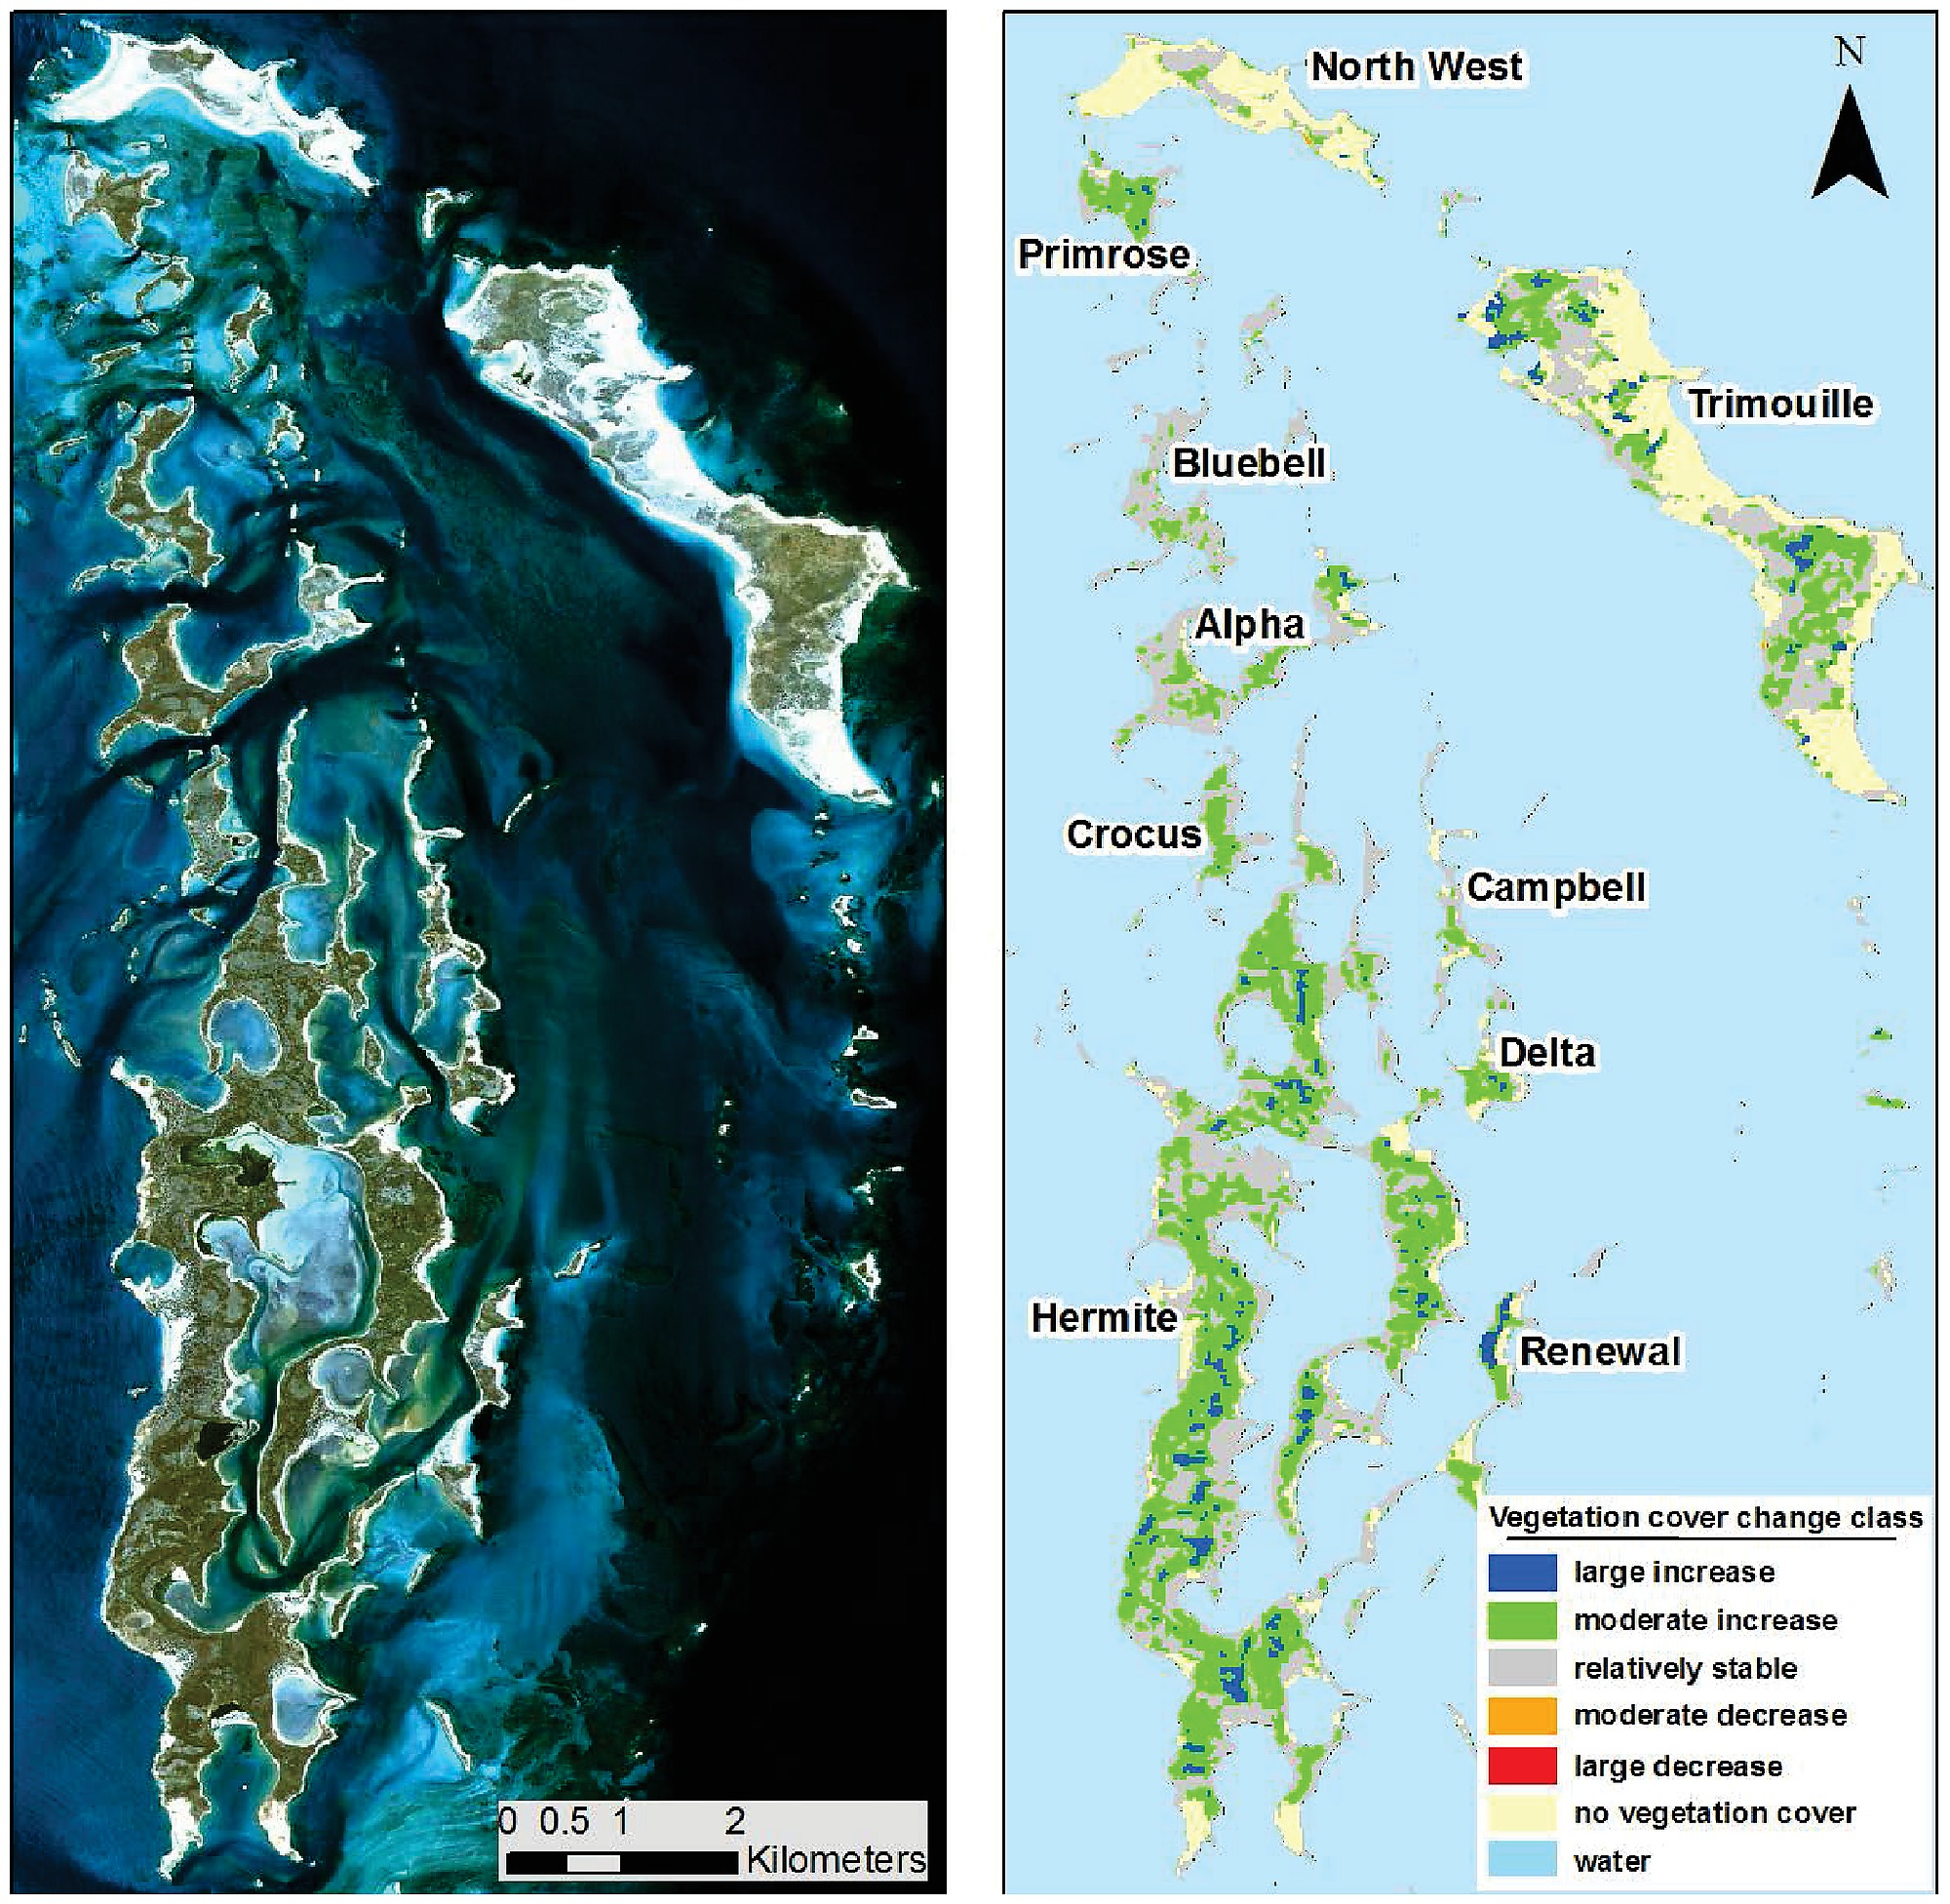 Foliage cover trend map of the Montebello island archipelago for